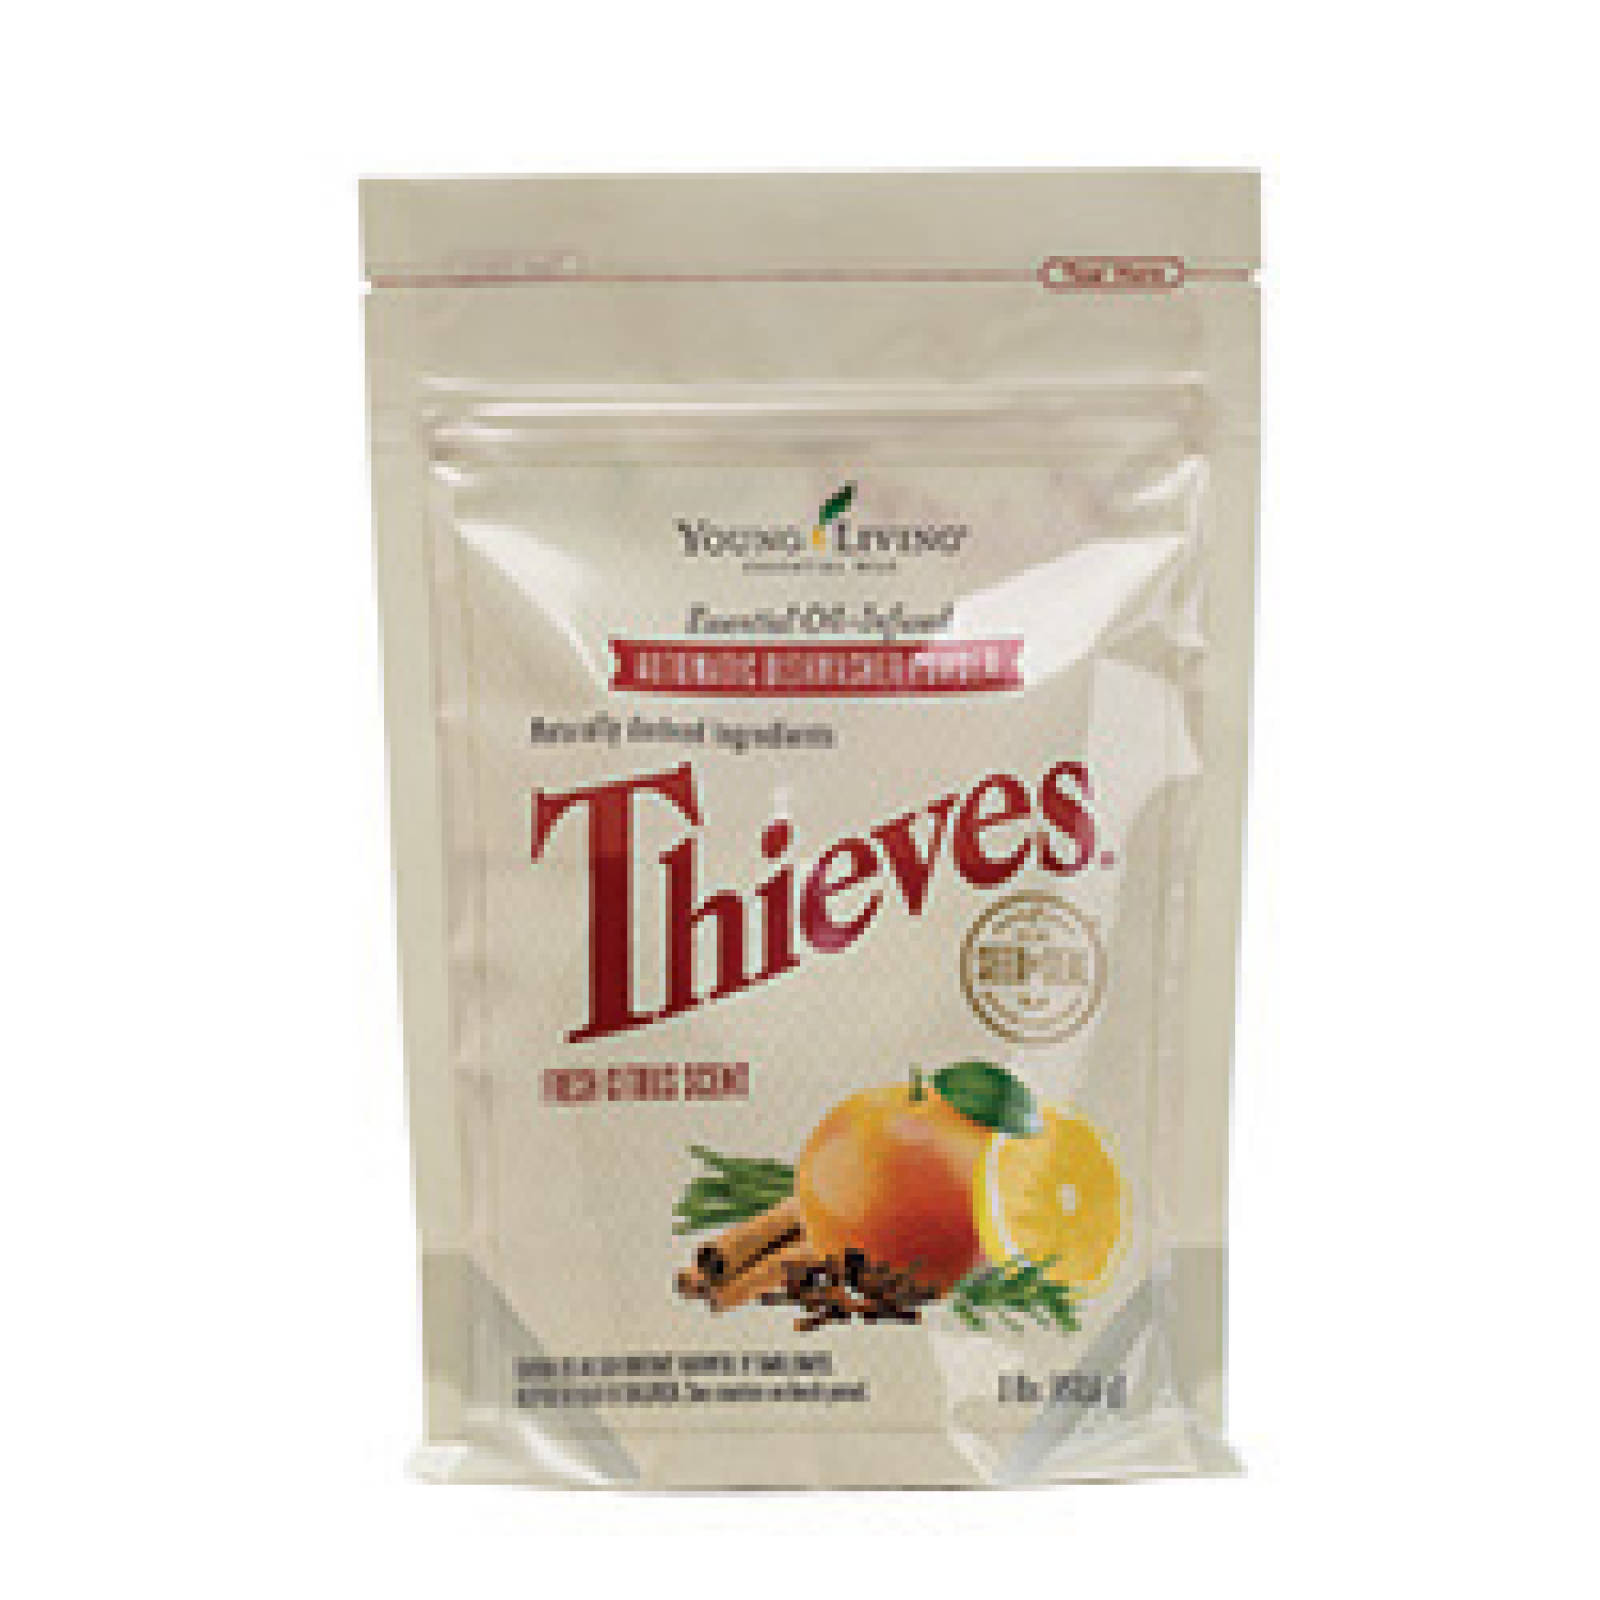 THIEVES DISHWASHER DETERGENT